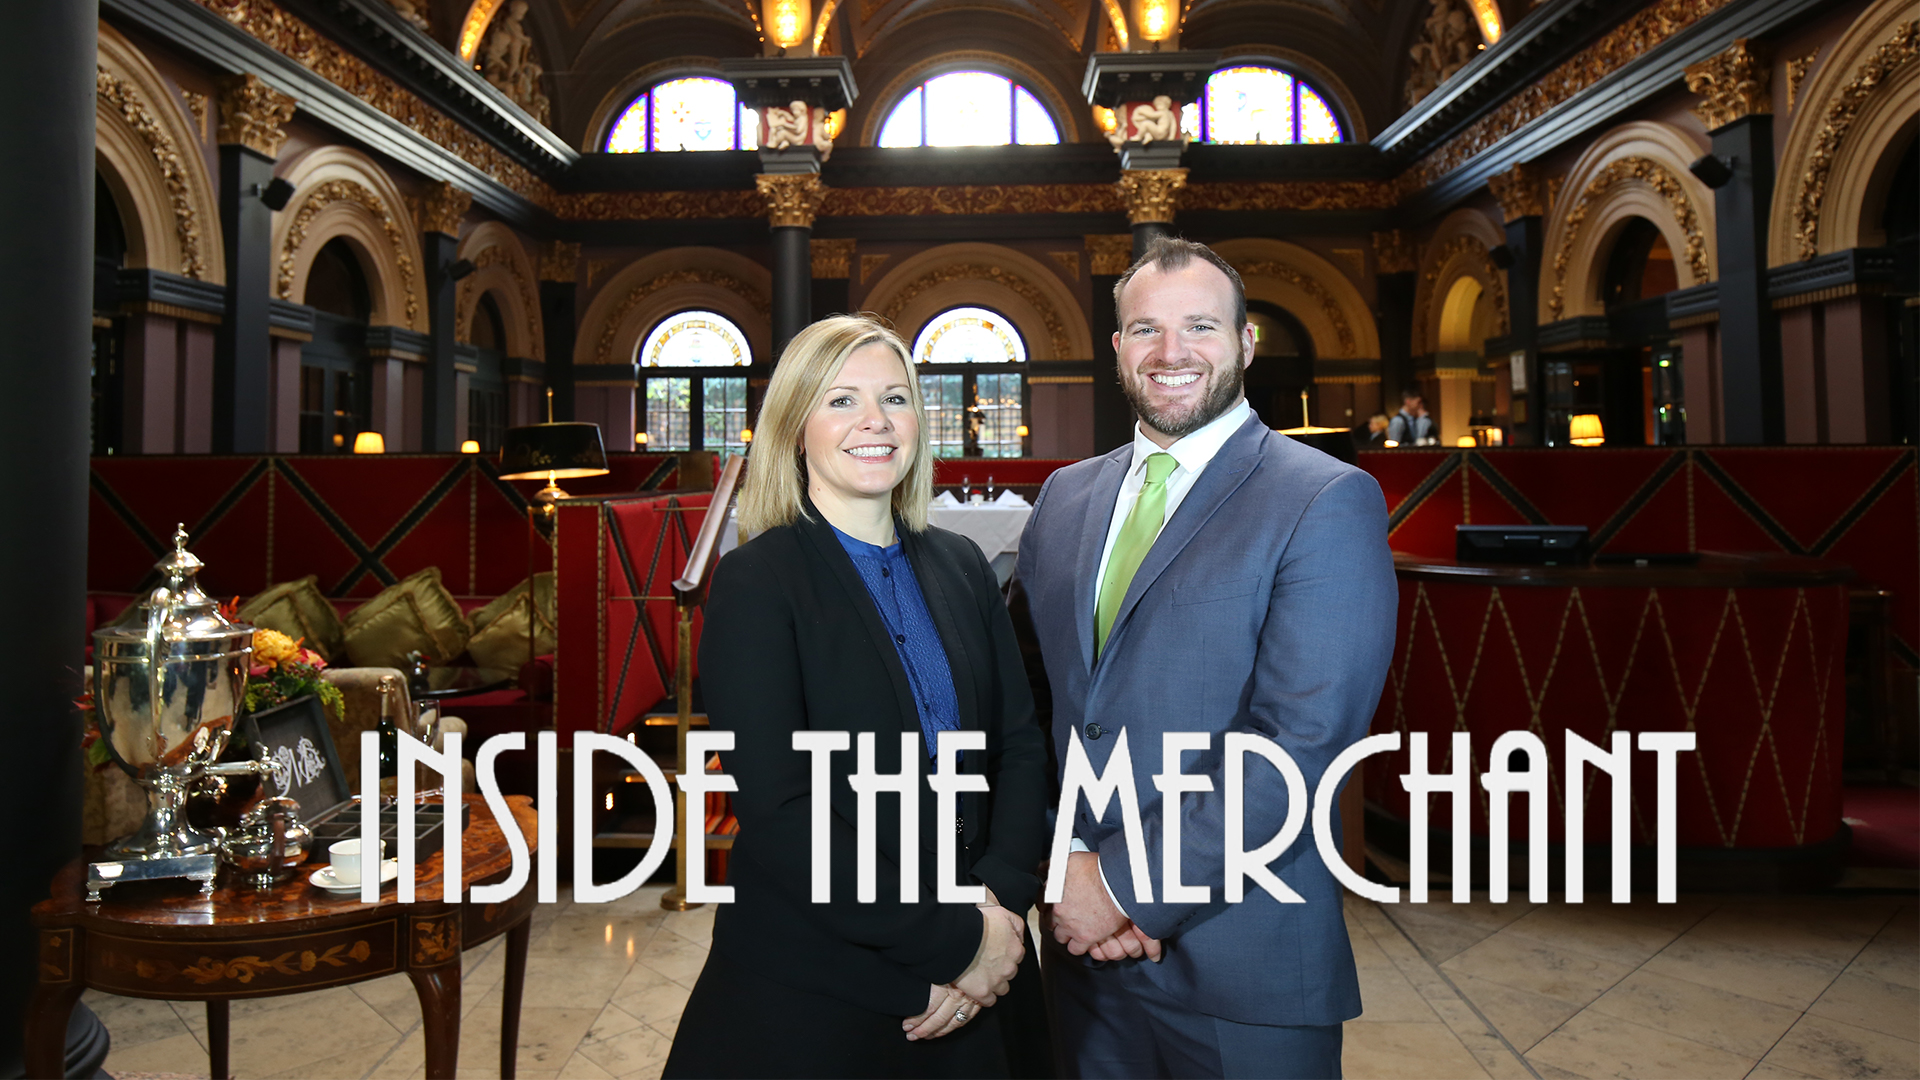 Inside the Merchant